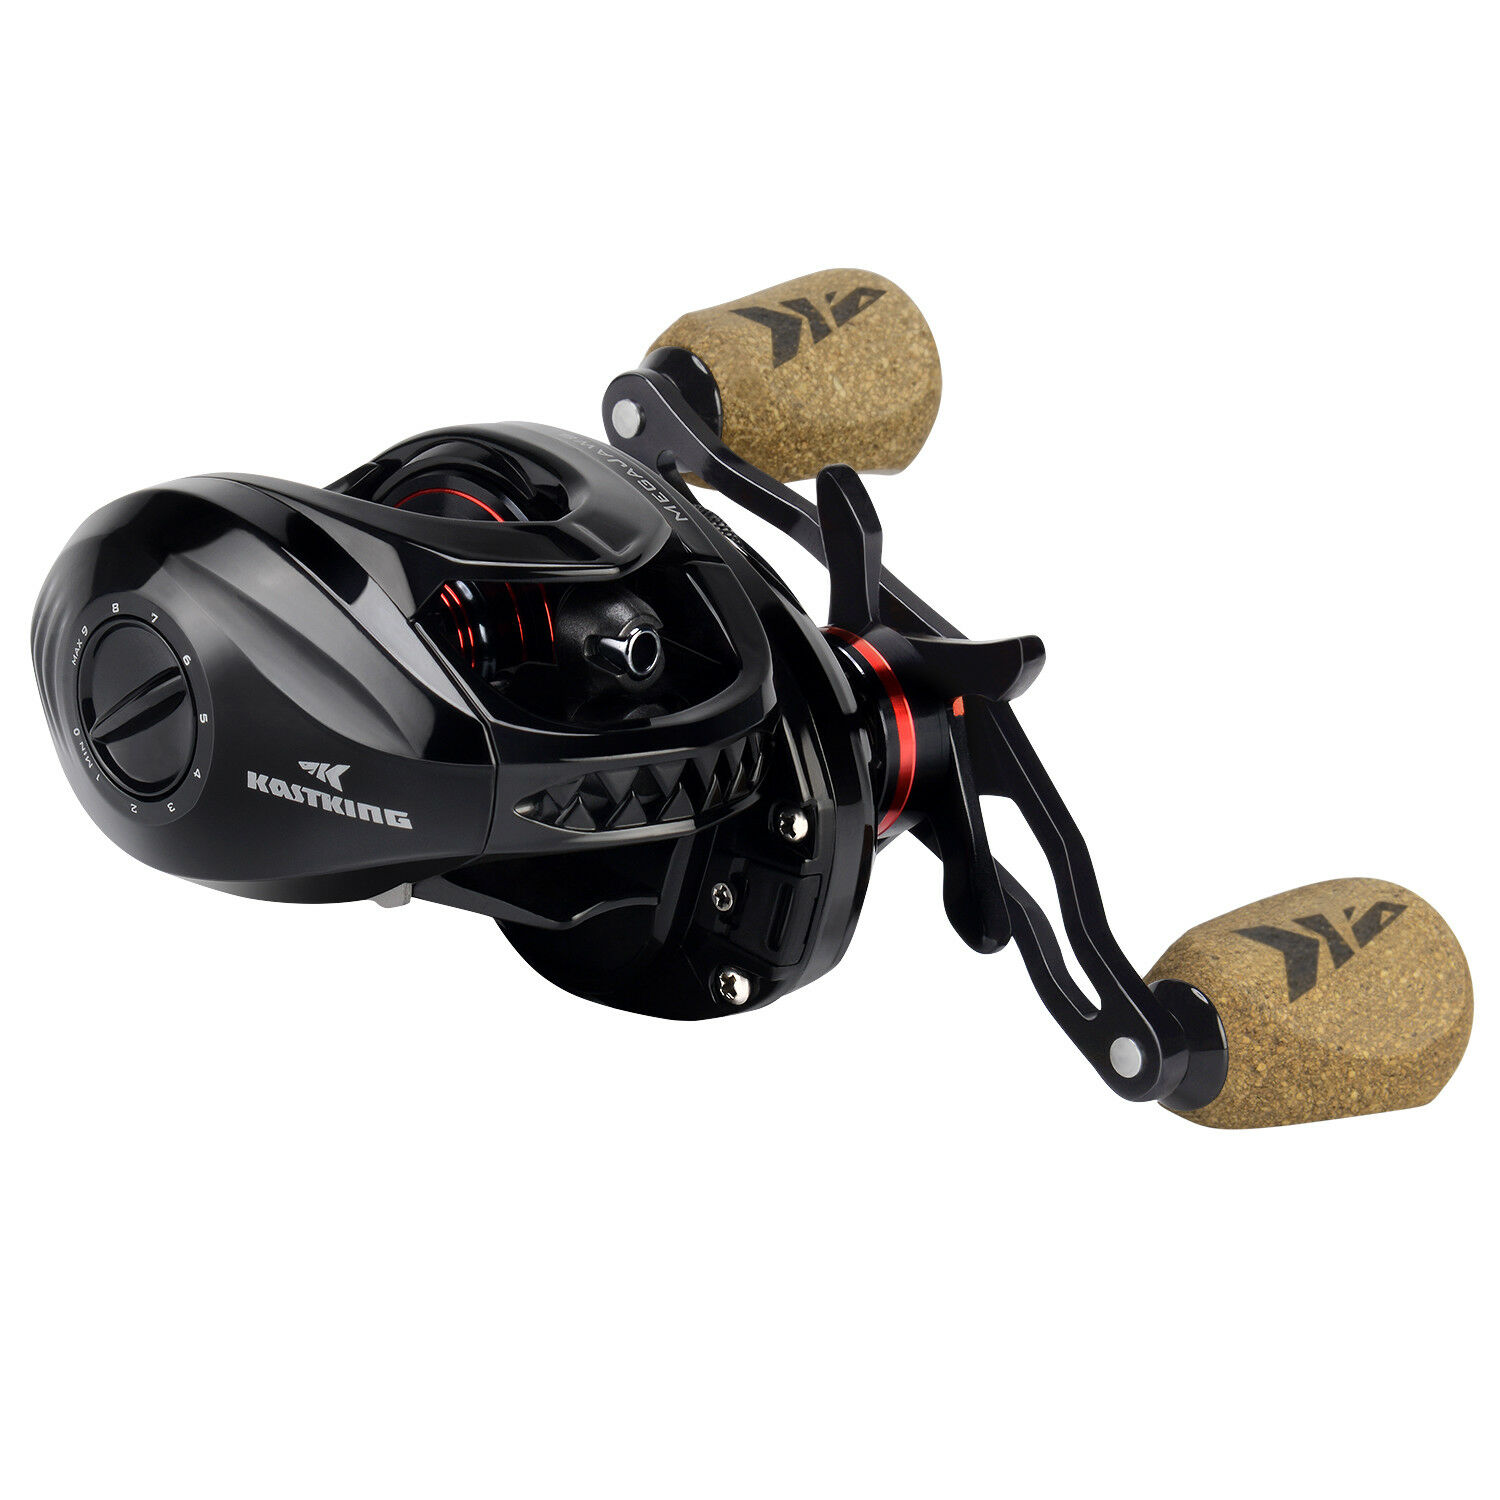 KastKing MegaJaws Baitcasting Reel color-Coded Gear Ratios from 5.4 1 to 9.1 1